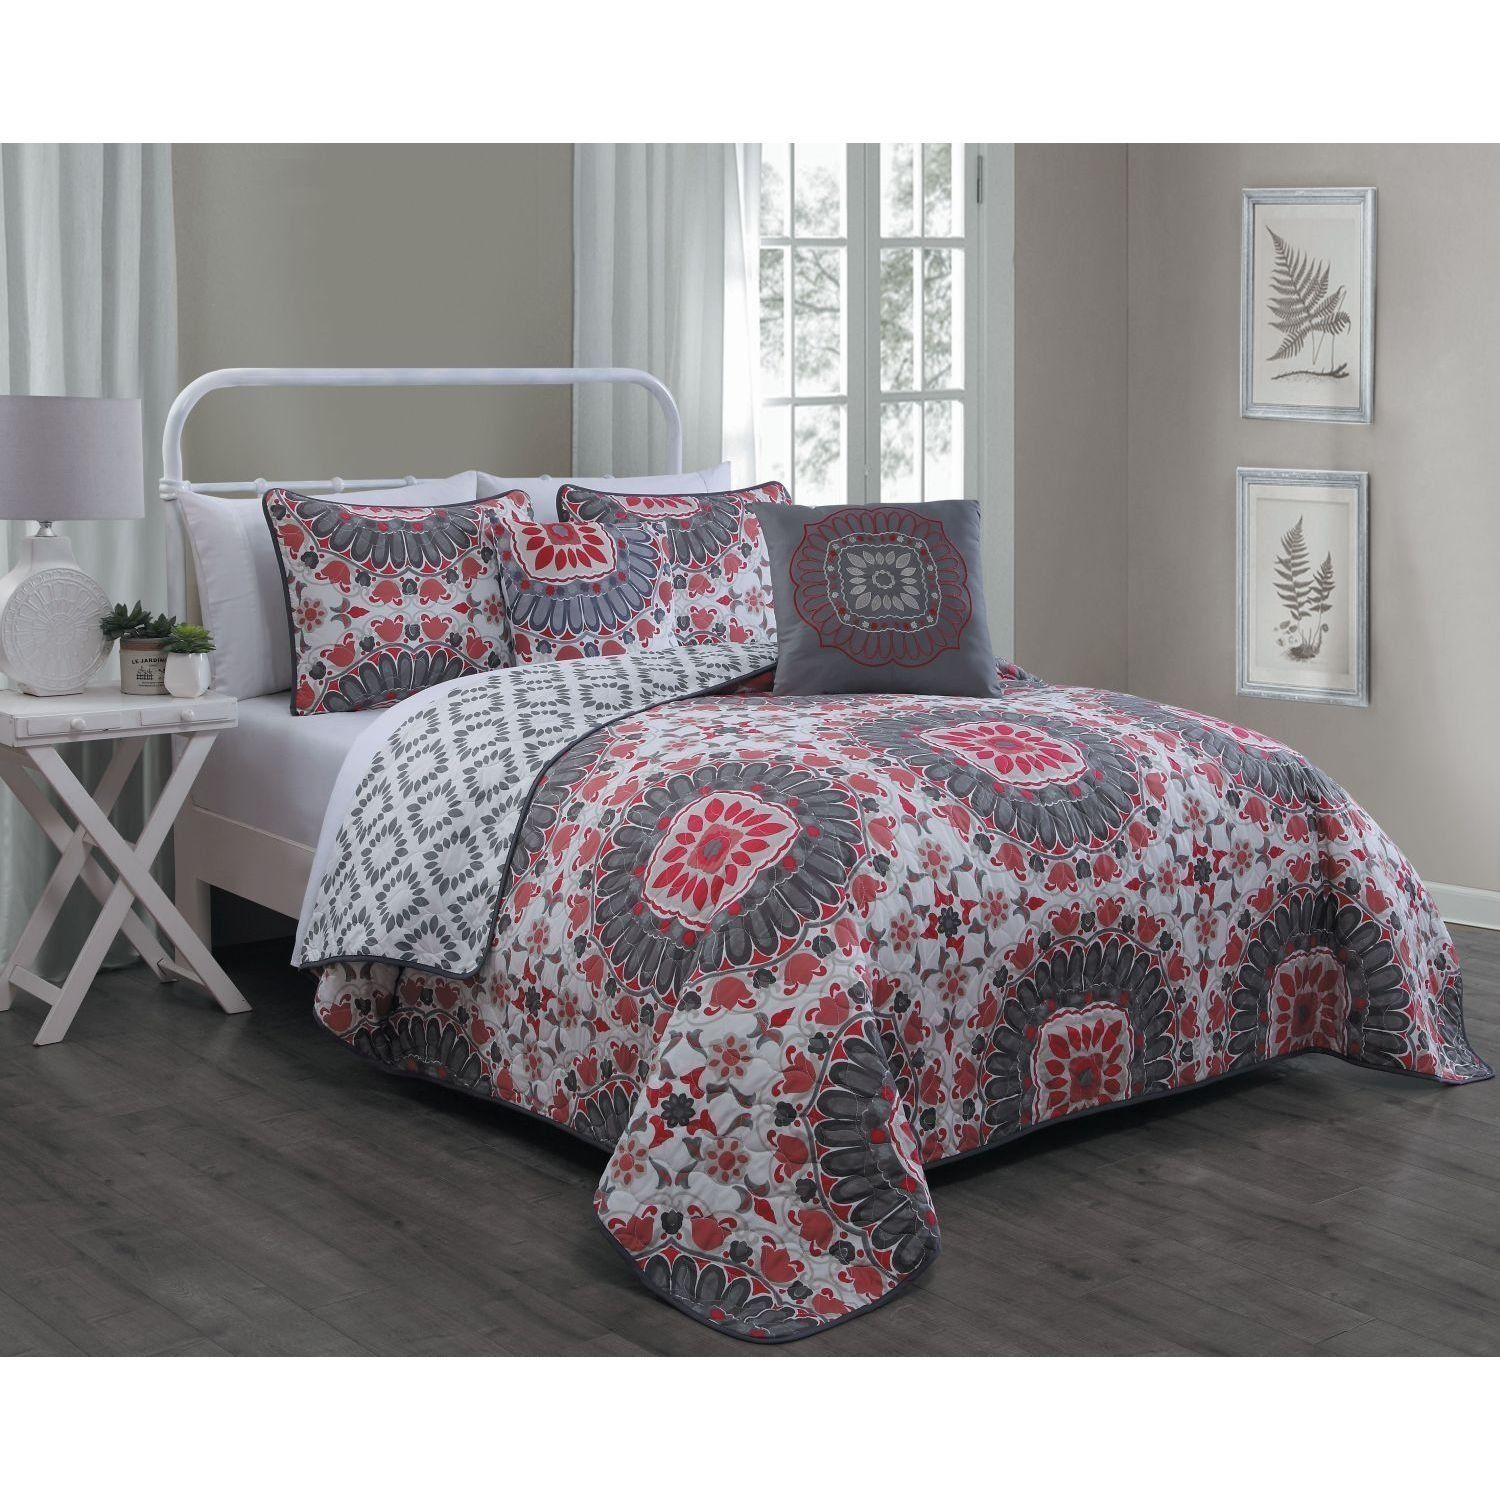 quilt red bedding set duvet product burgundy and damask paisley medallion print cover boho bohemian luxury shams